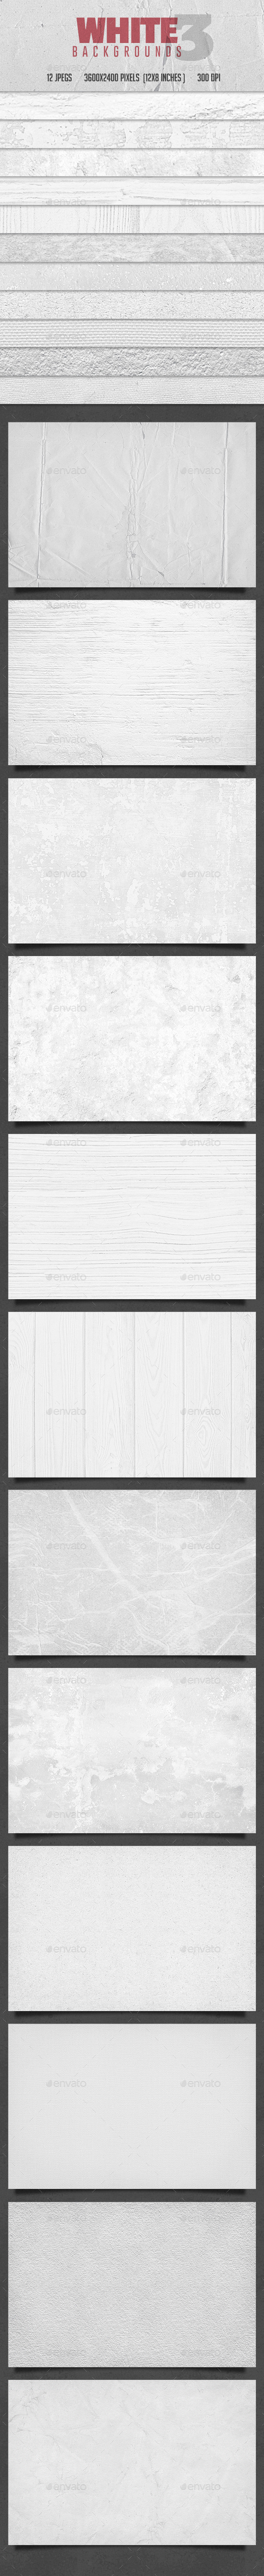 GraphicRiver White Backgrounds Col 3 10023693